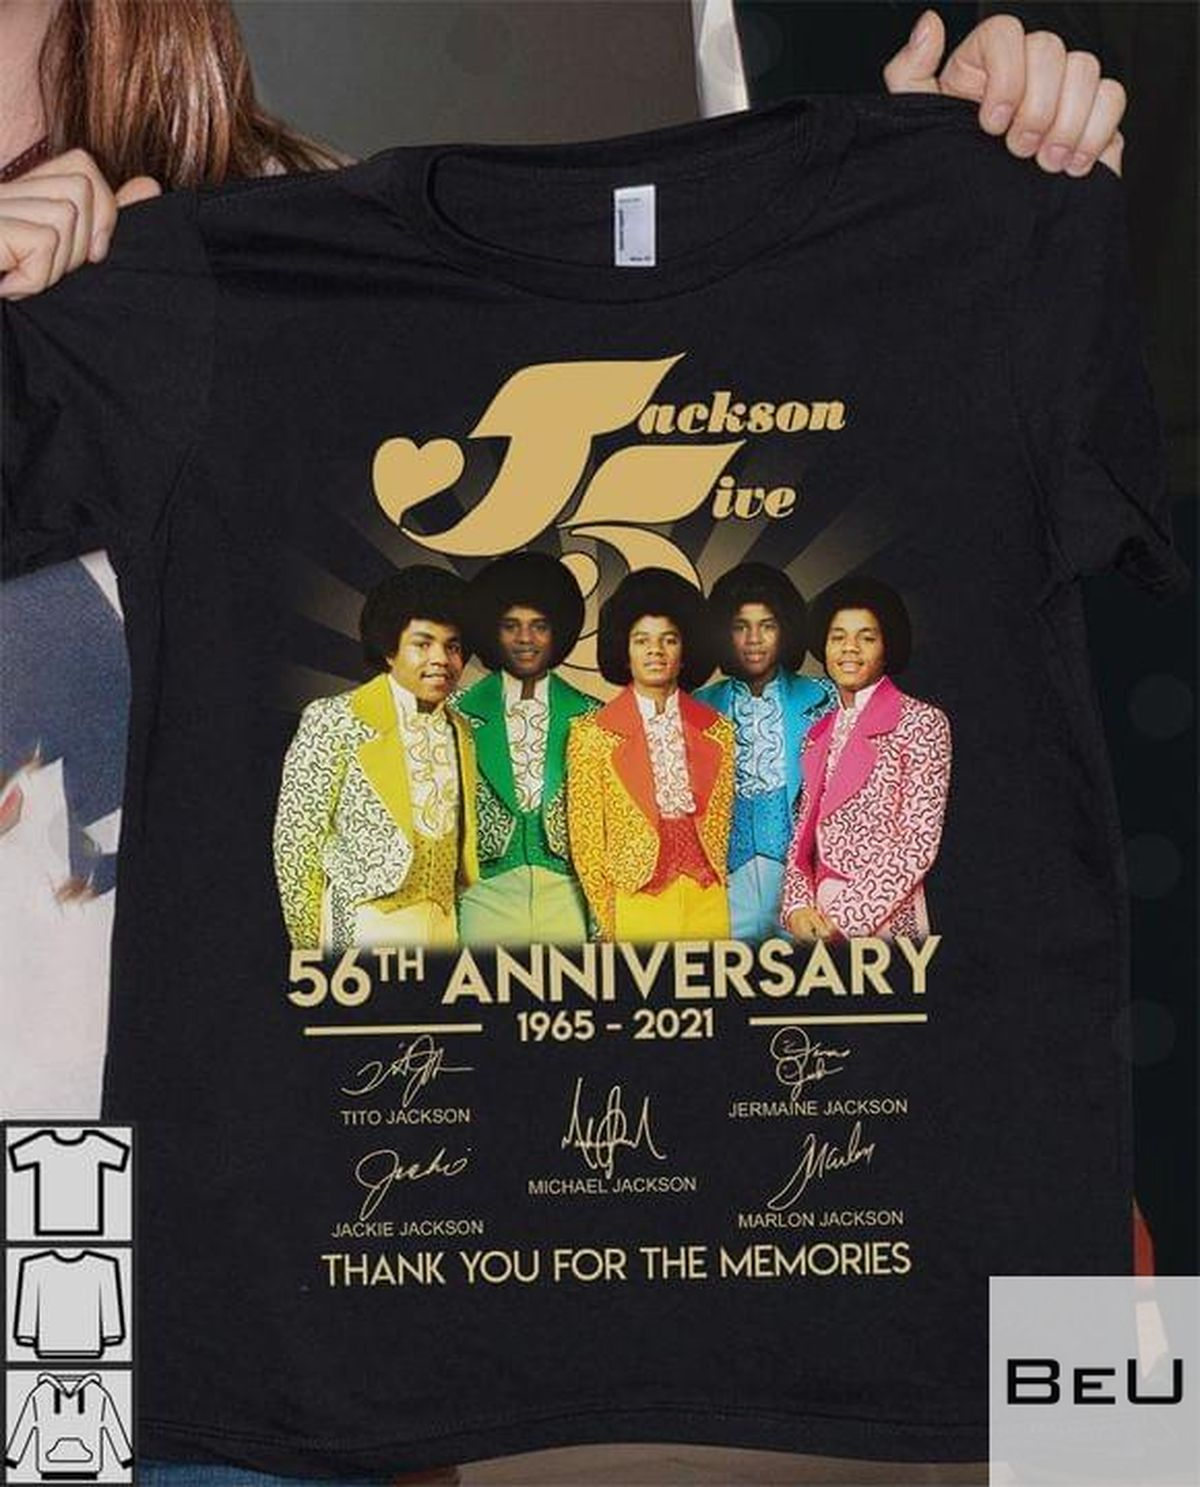 Jackson Five 56th Anniversary 1965 2021 Thank You For The Memories Shirt v